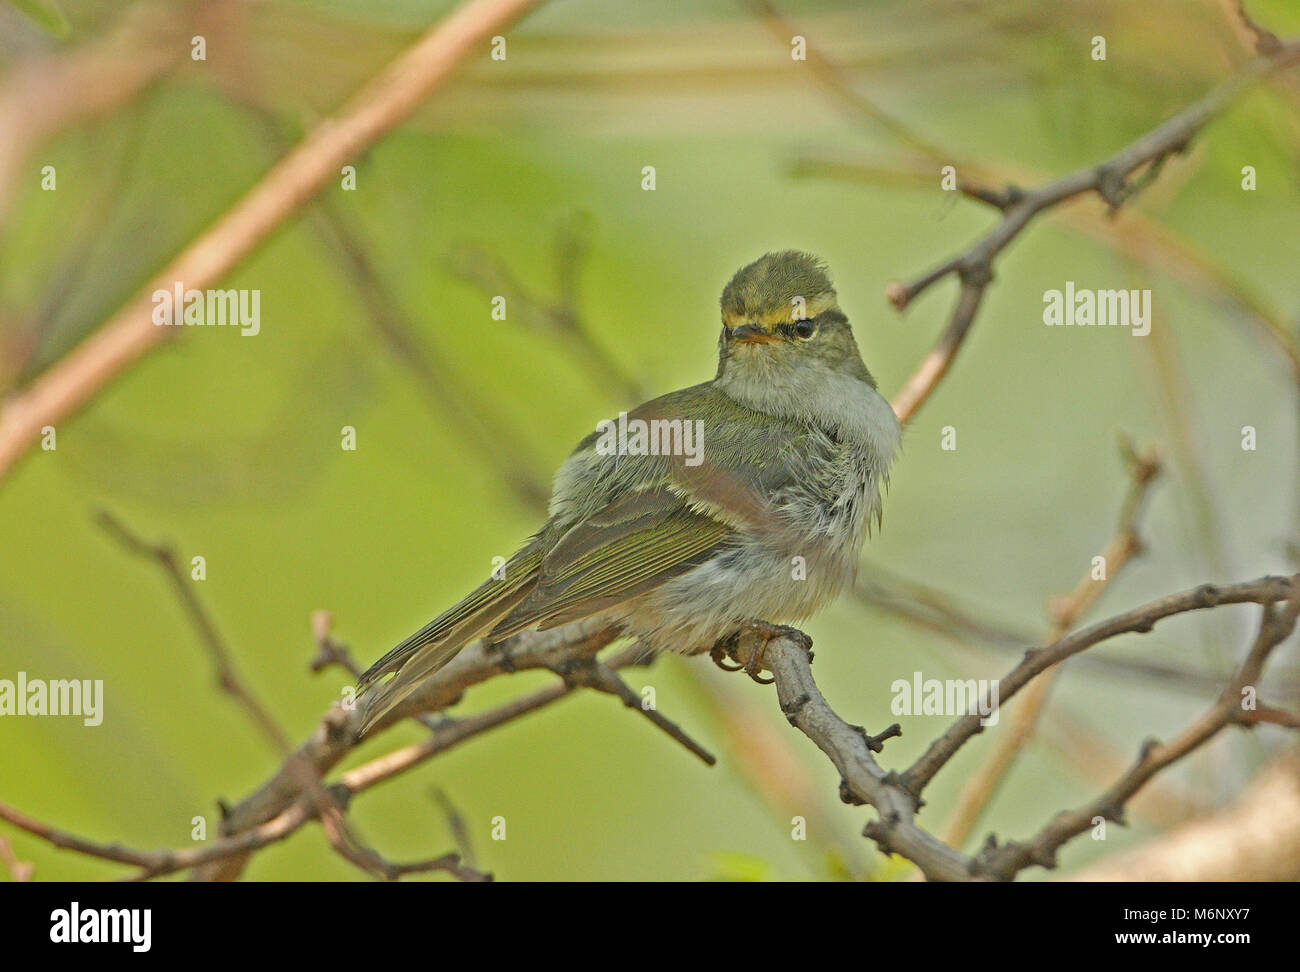 Pallas's Warbler (Phylloscopus proregulus) adult perched inside bush preening  Hebei, China       May Stock Photo